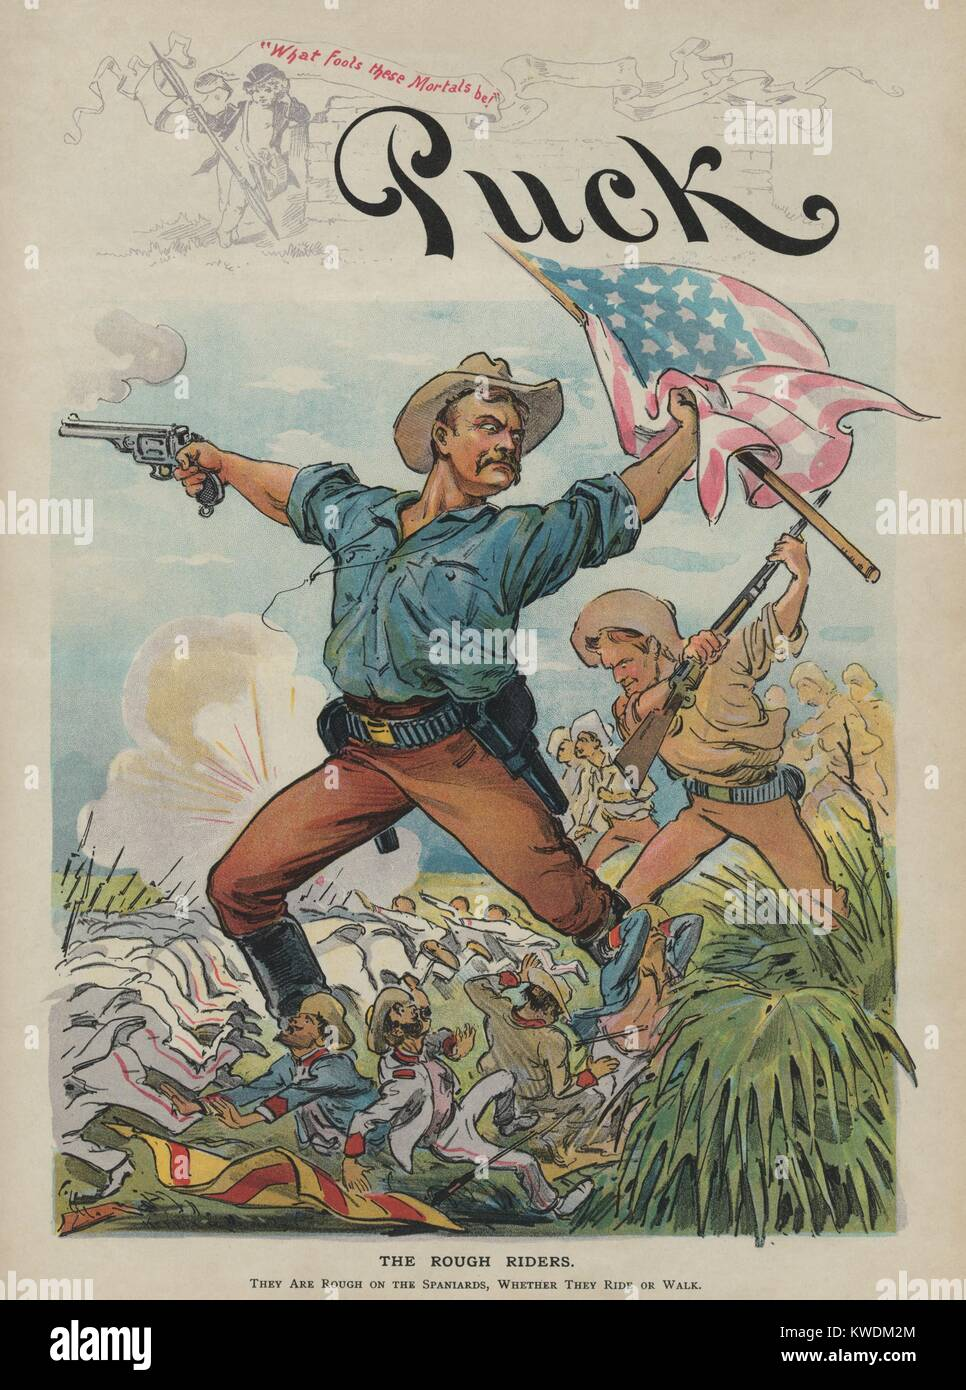 THE ROUGH RIDERS, Puck Magazine illustration, July 27, 1898. The non-factual made-up image in this political cartoon - Stock Image